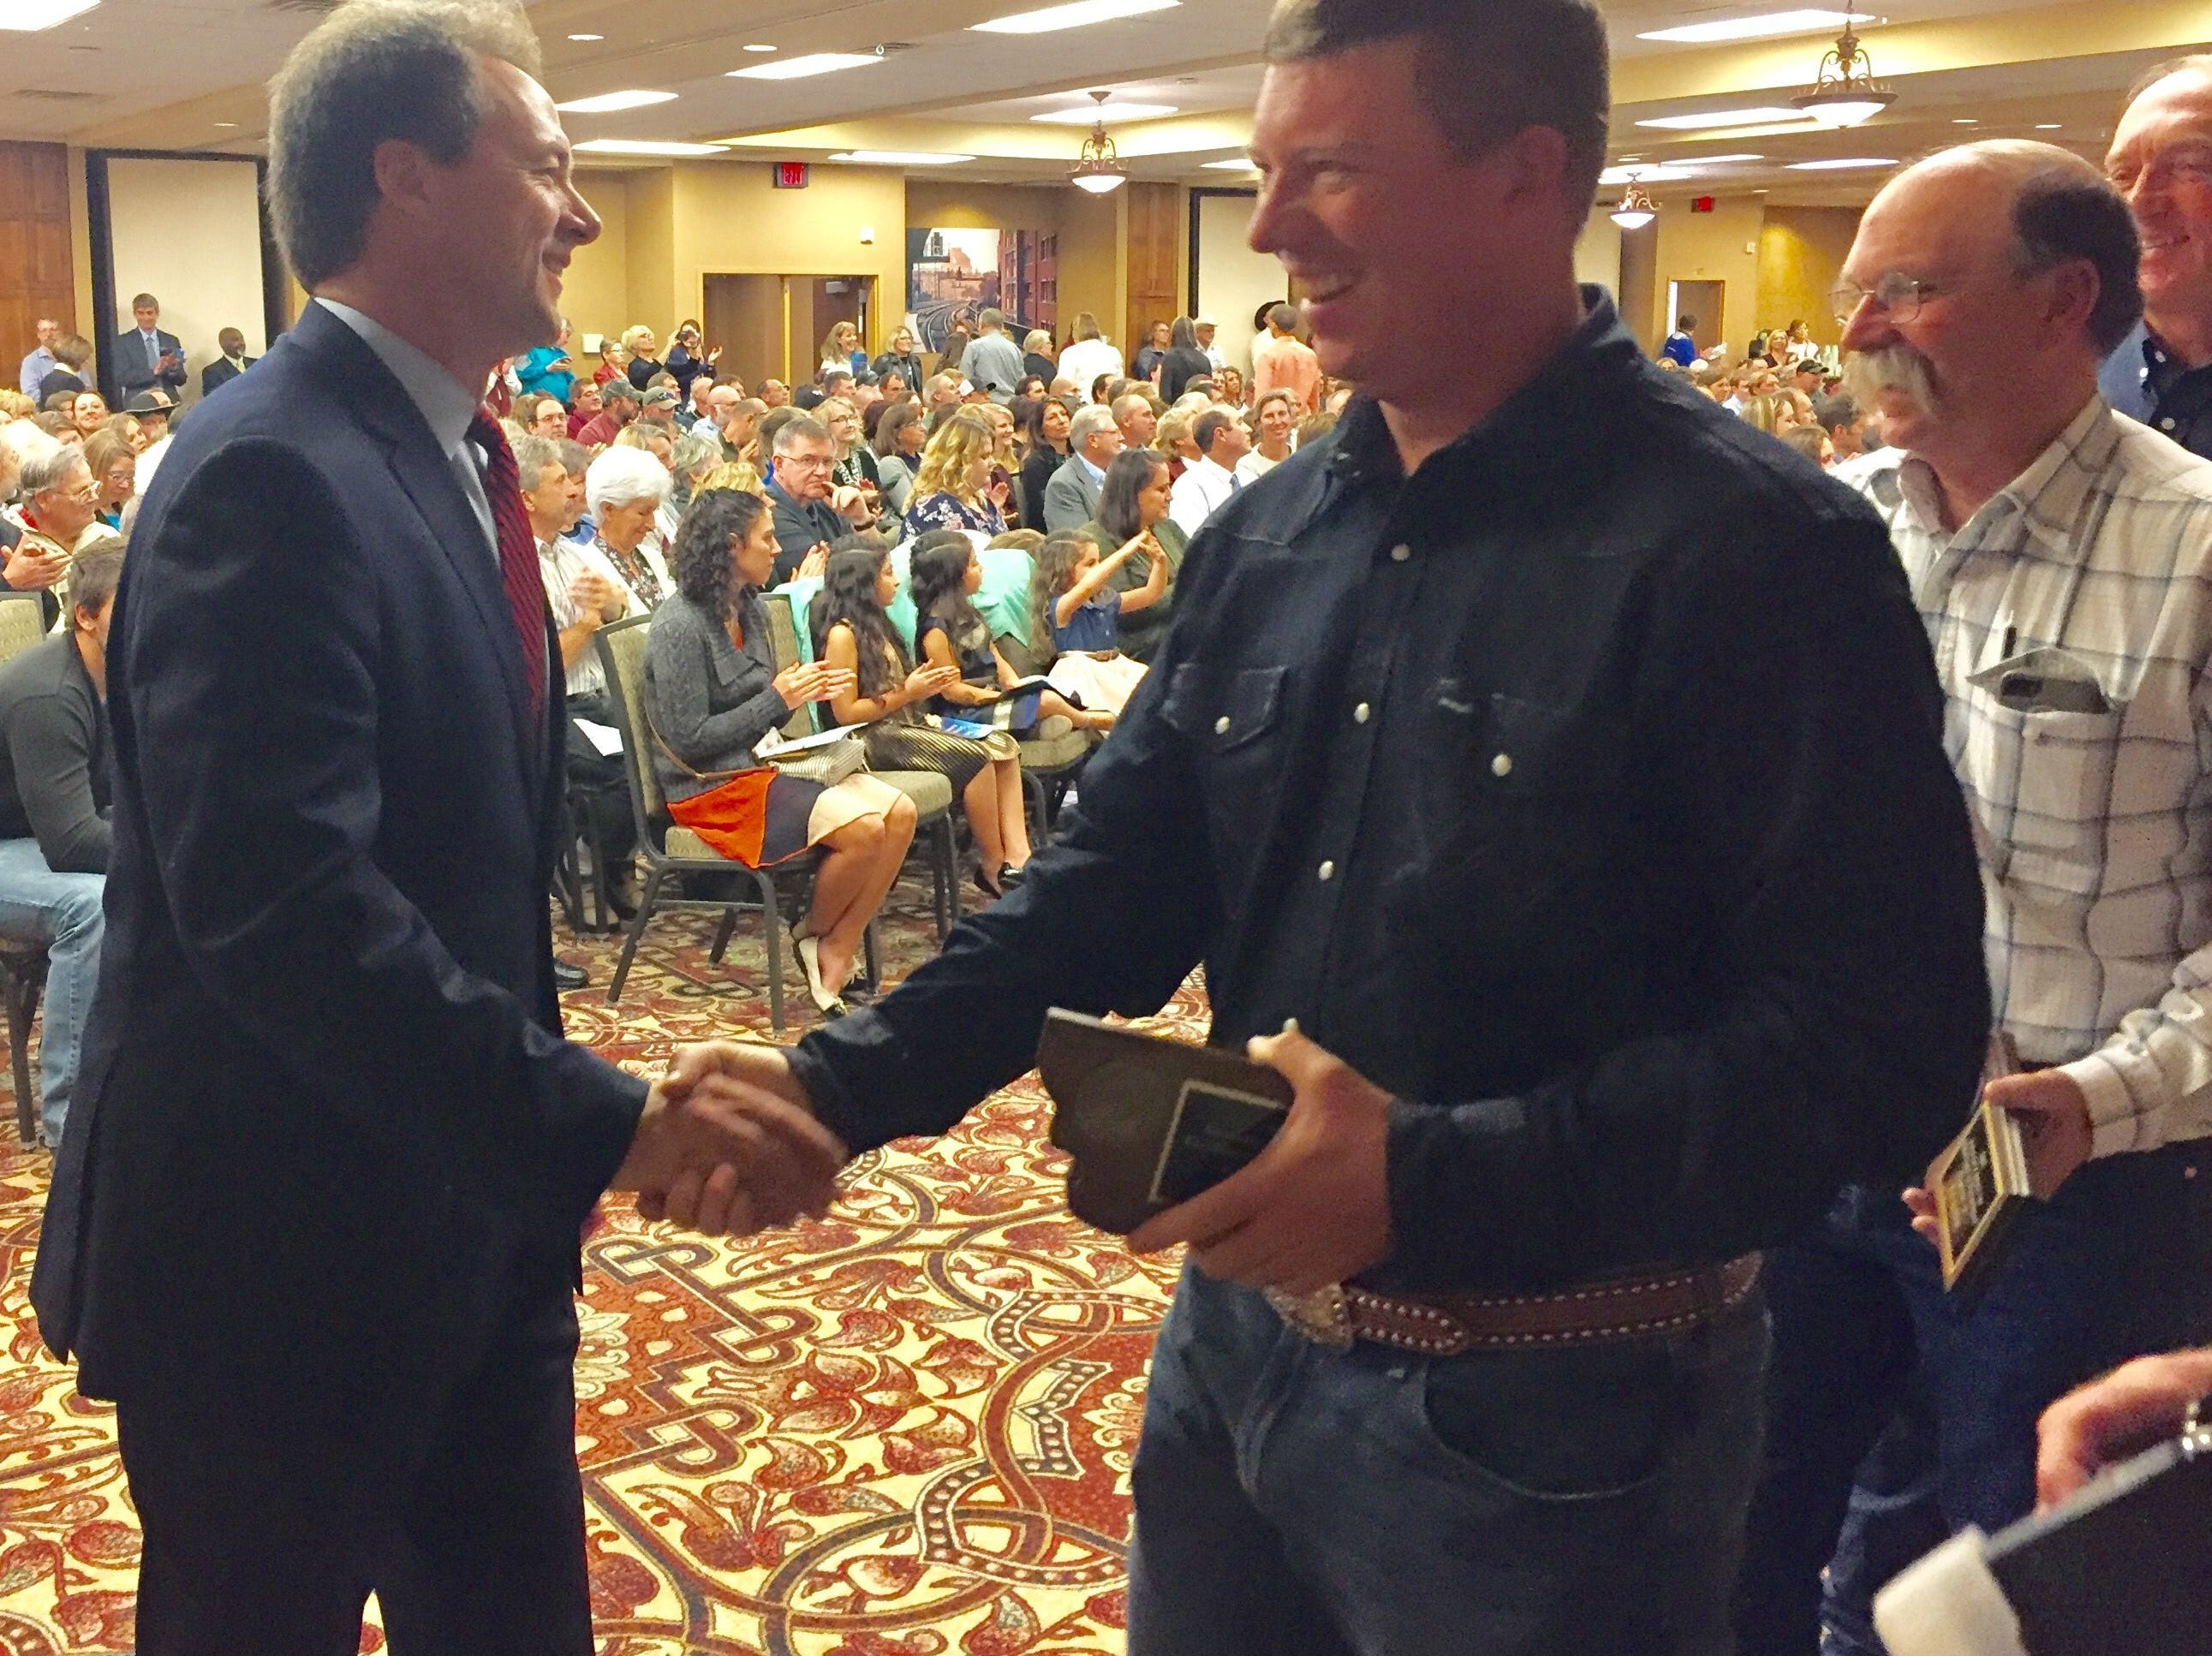 Gov. Steve Bullock, left, congratulates state employees Monday for performance excellence. Gov. Steve Bullock, left, congratulates state employees Monday for performance excellence.